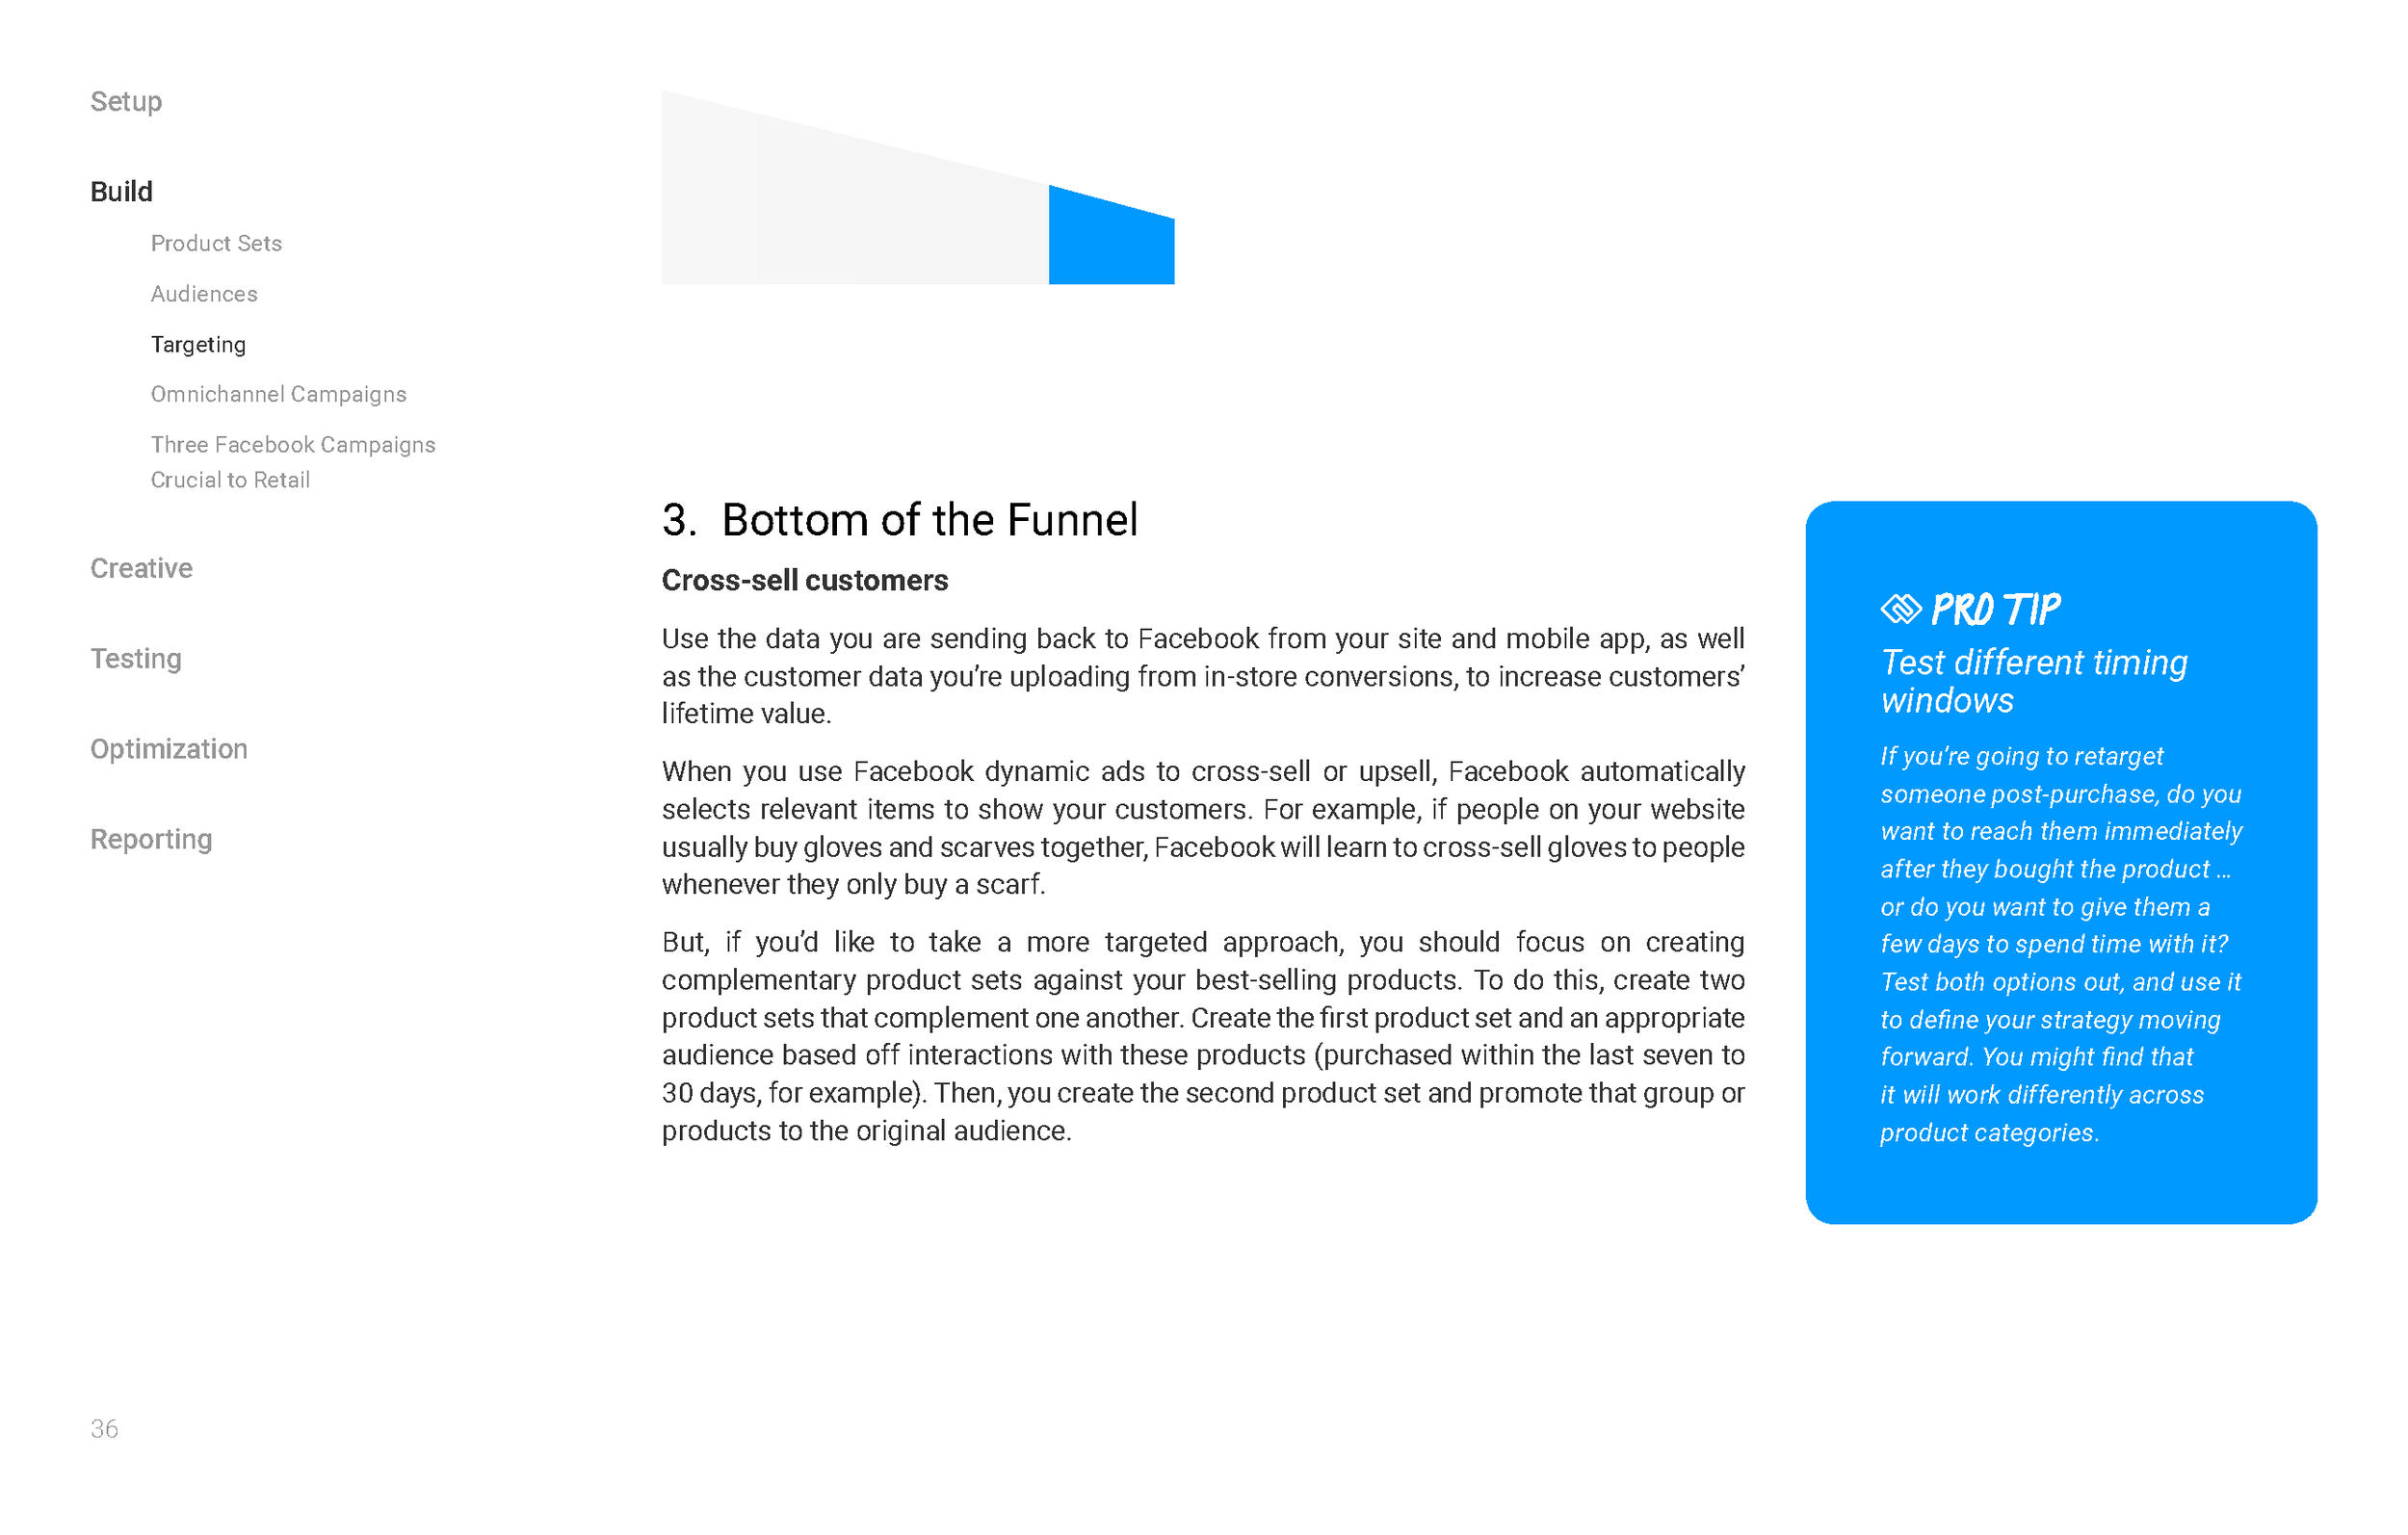 retail playbook _Page_036.png